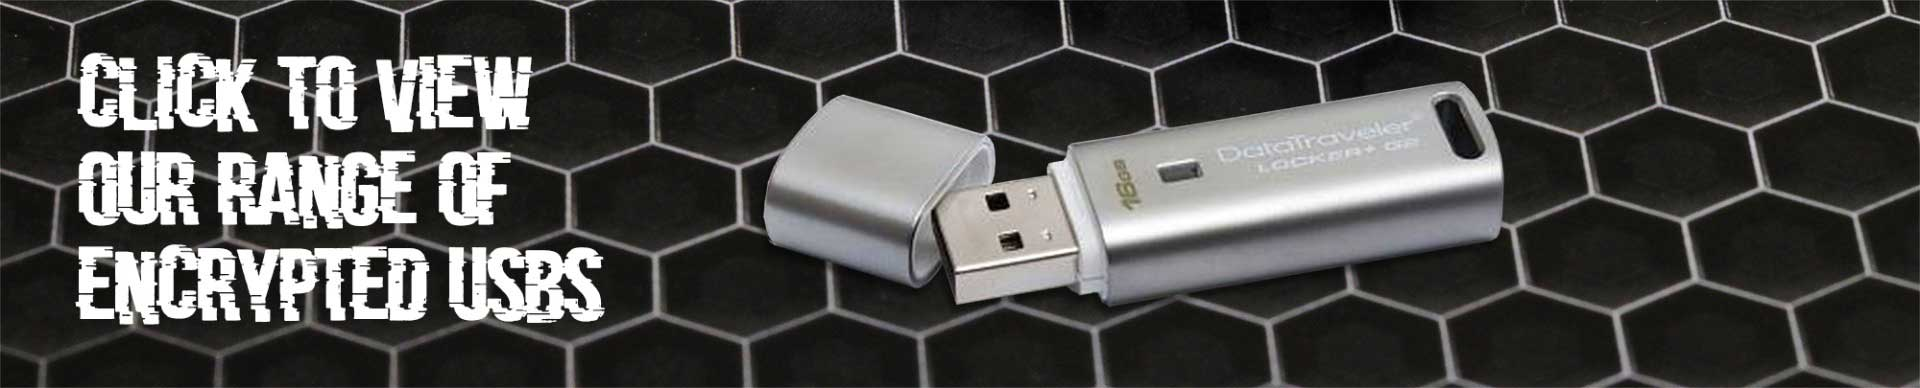 Click for encrypted usb range